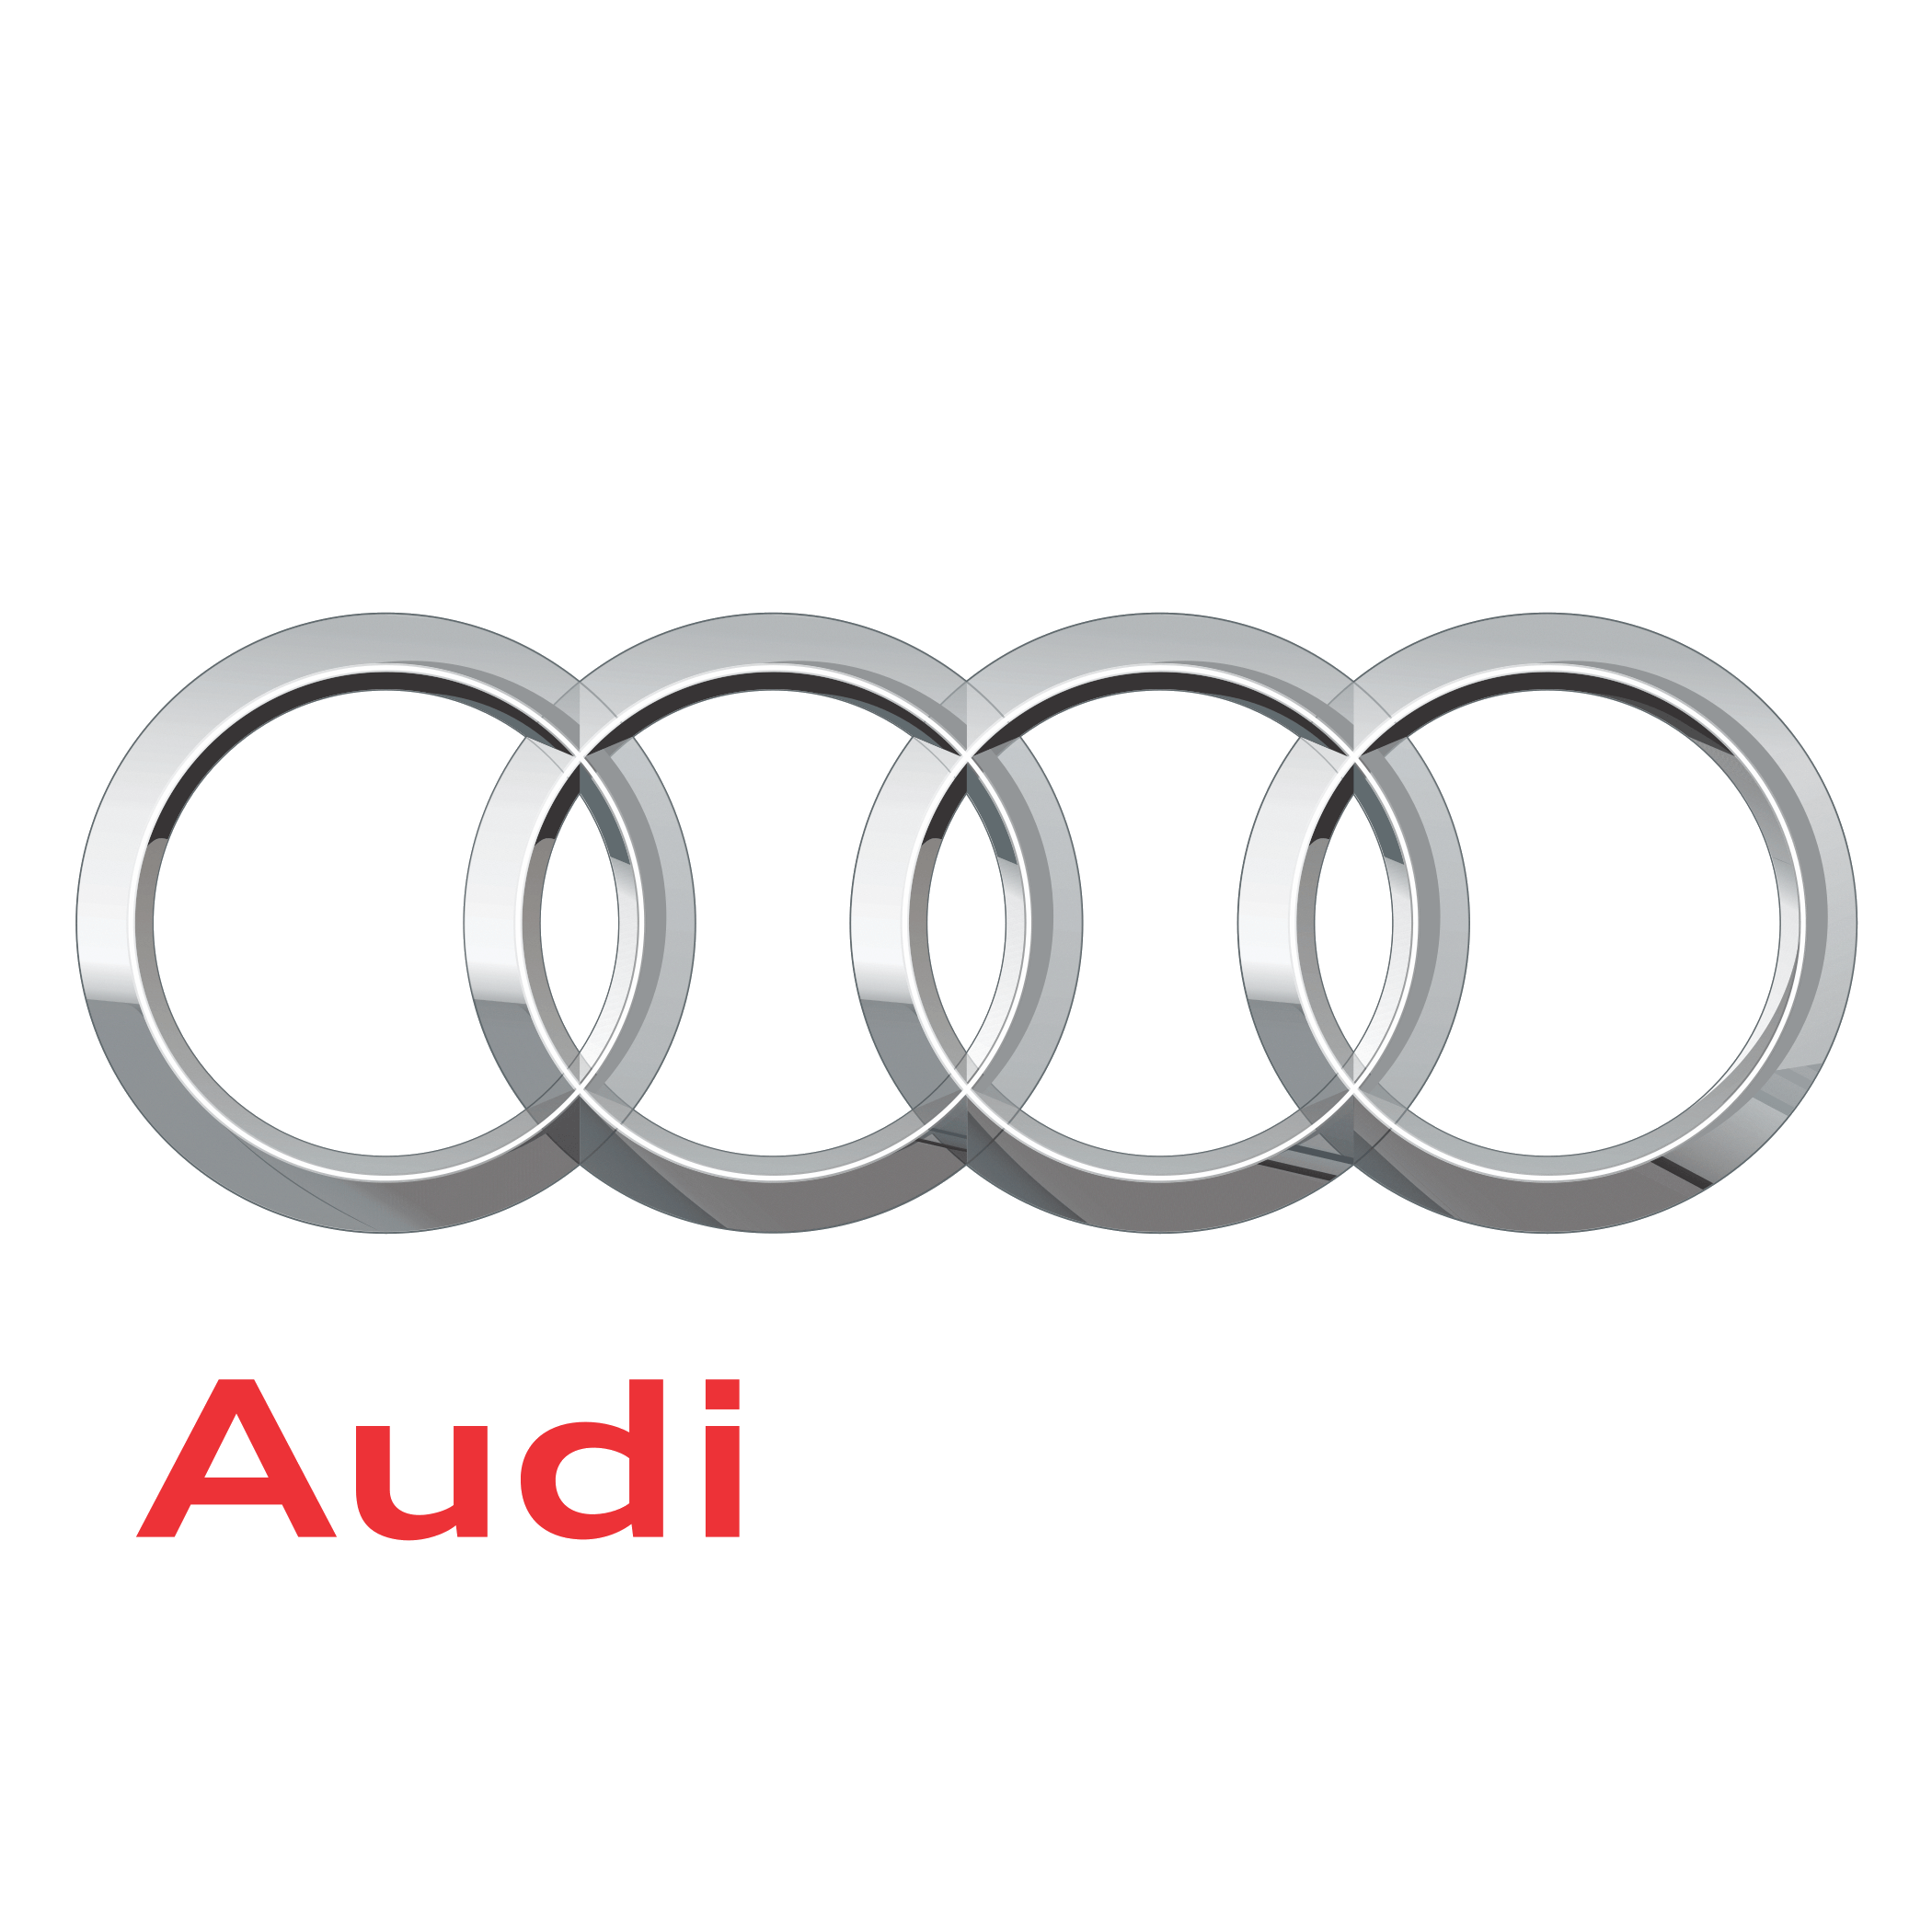 Audi Logo - Audi Logo, Audi Car Symbol Meaning and History | Car Brand Names.com